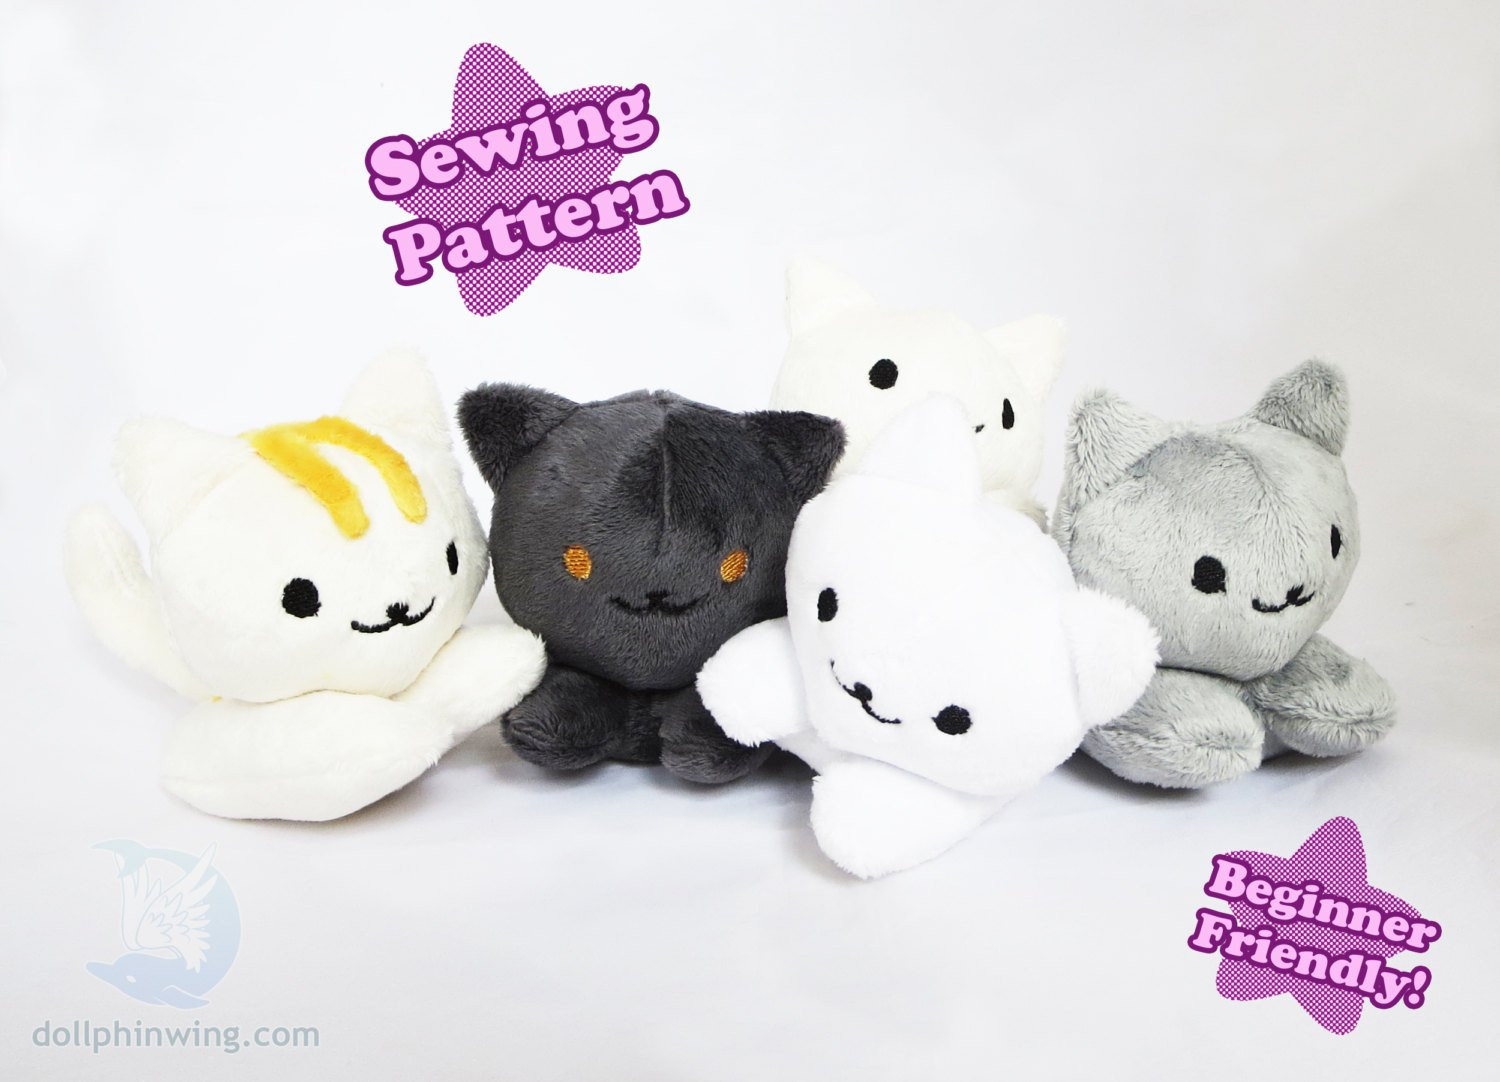 Kitty Beanie Plushie Sewing Pattern sewing pattern and tutorial pdf_pattern, plushie_pattern, sewing_pattern